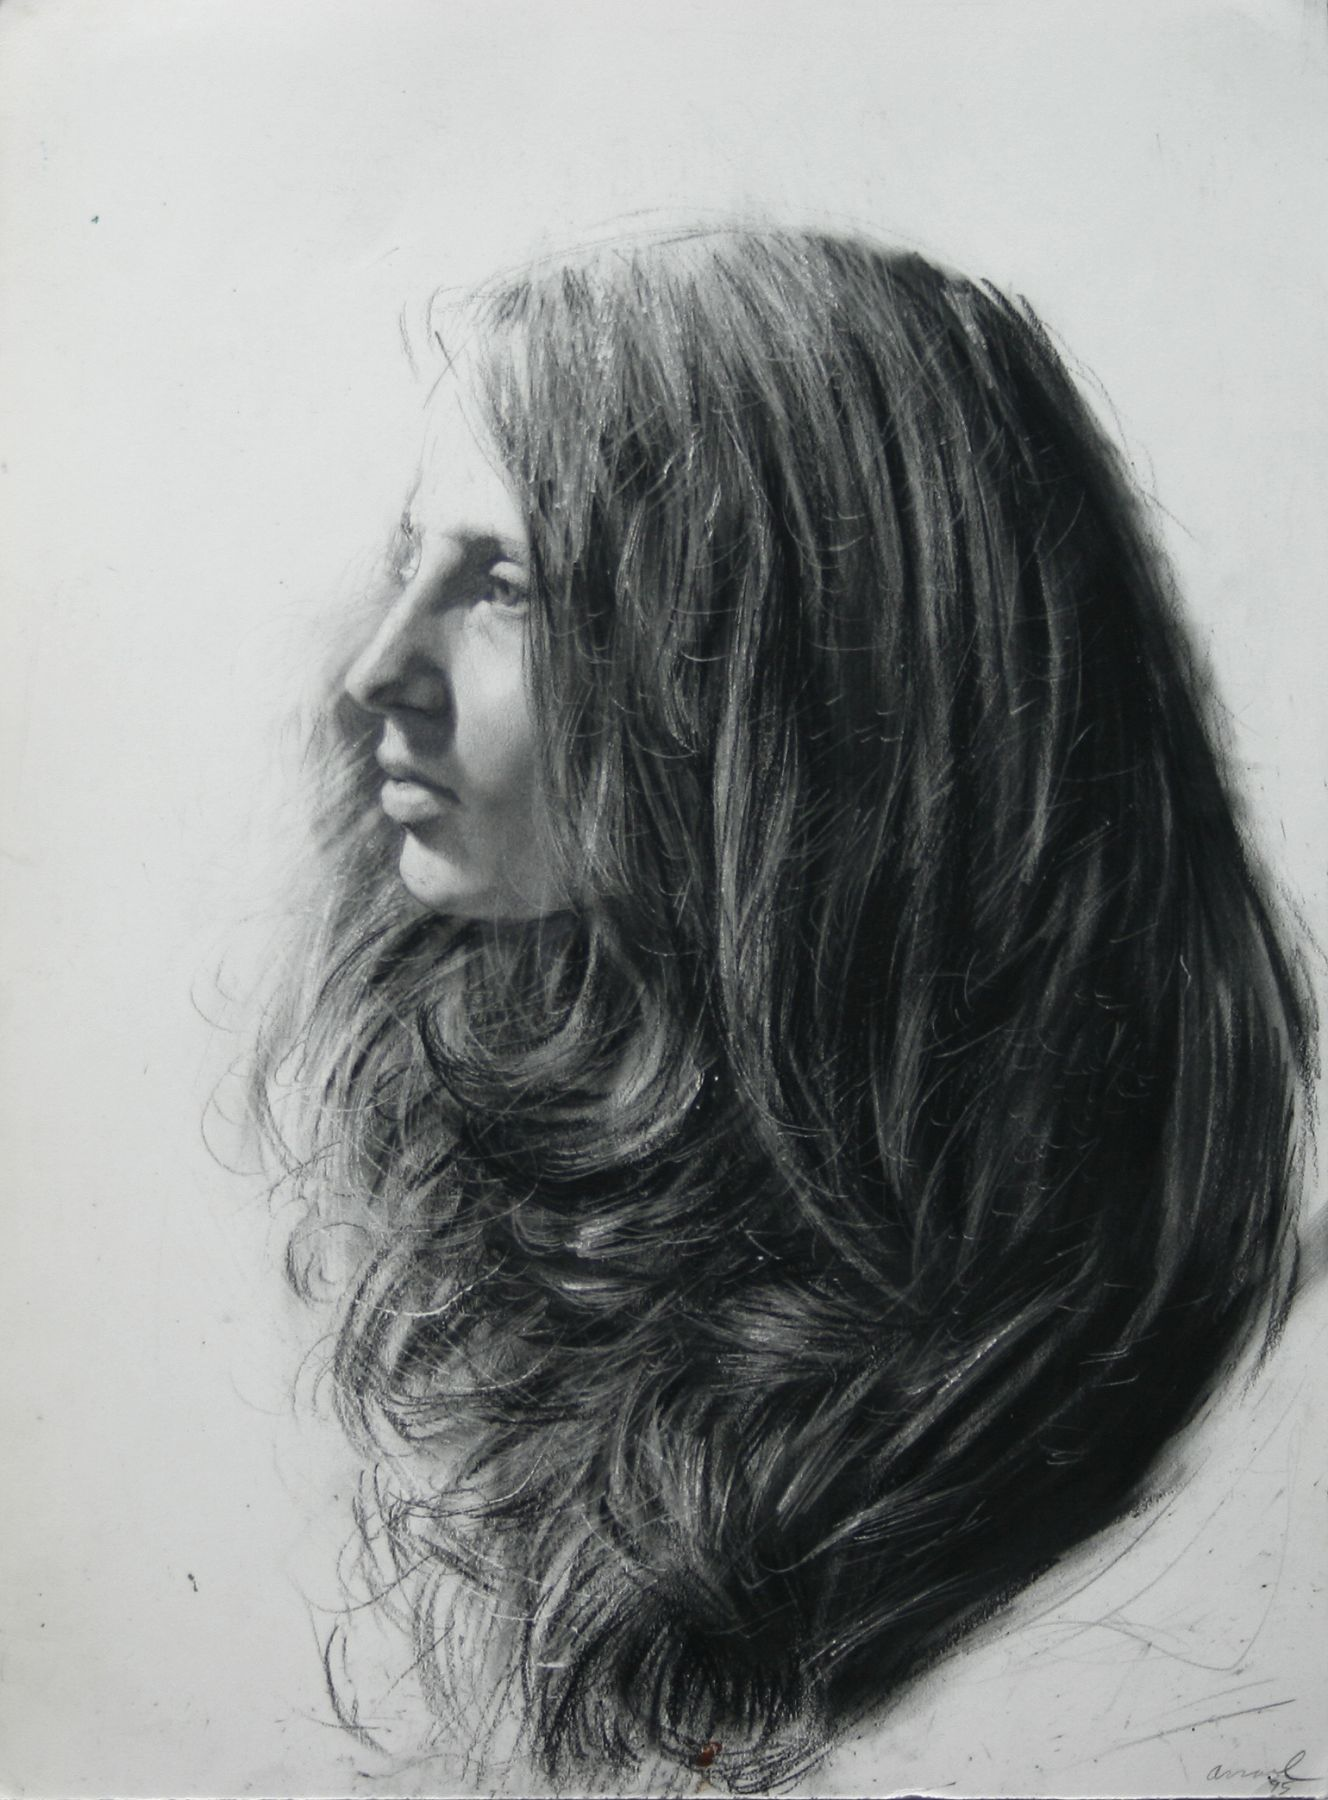 Steven Assael, Girl in Profile (SOLD), 1995, crayon and graphite on paper, 14 1/8 x 10 3/8 inches